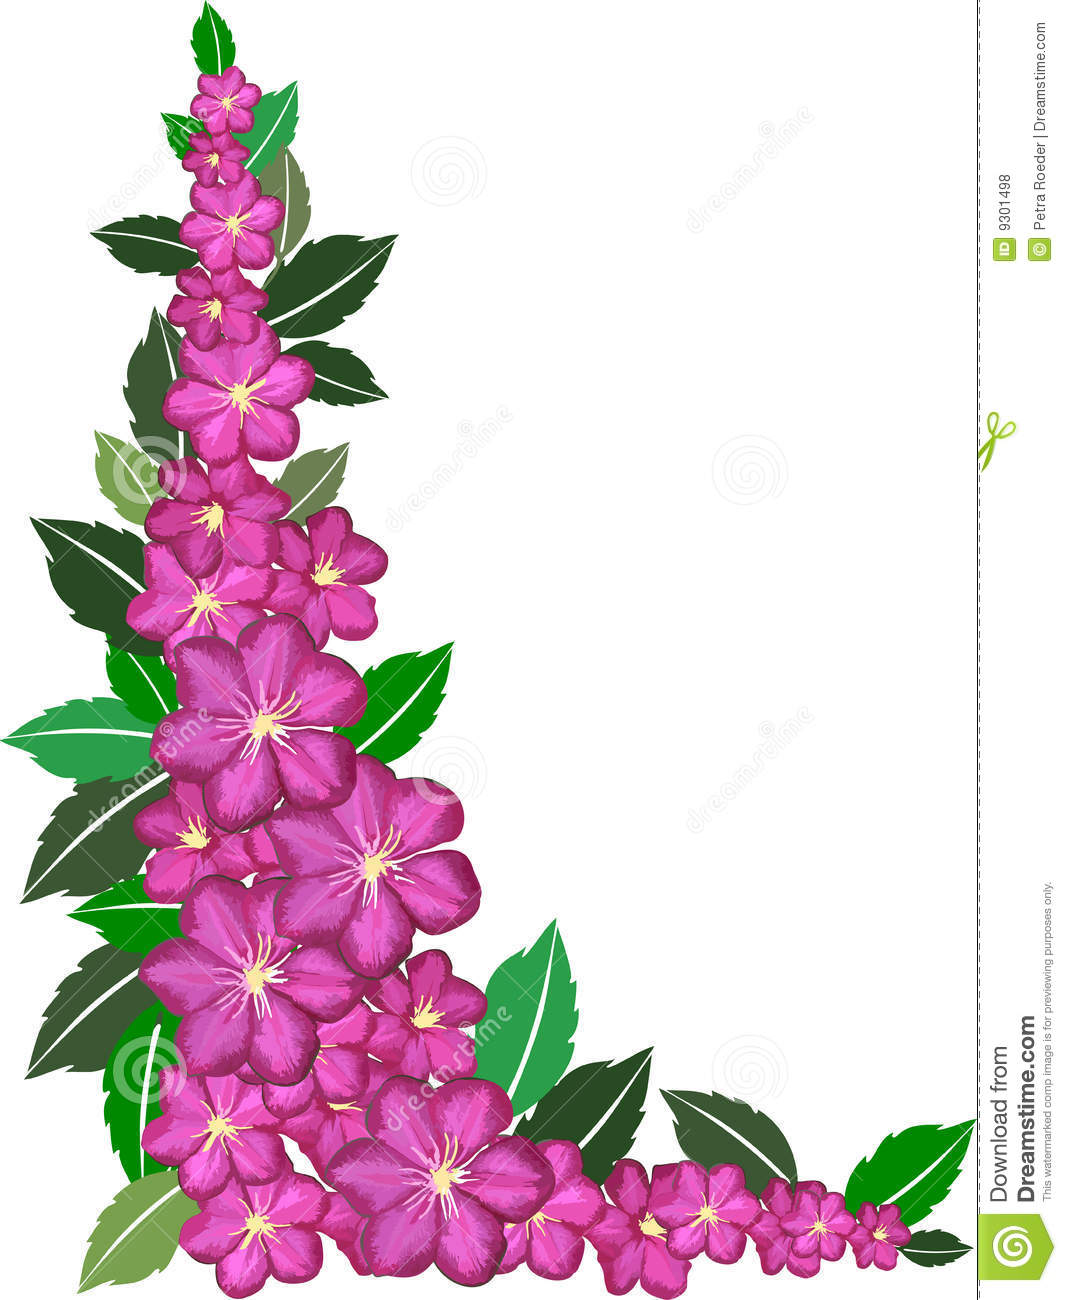 Flower Borders   Clipart Panda   Free Clipart Images